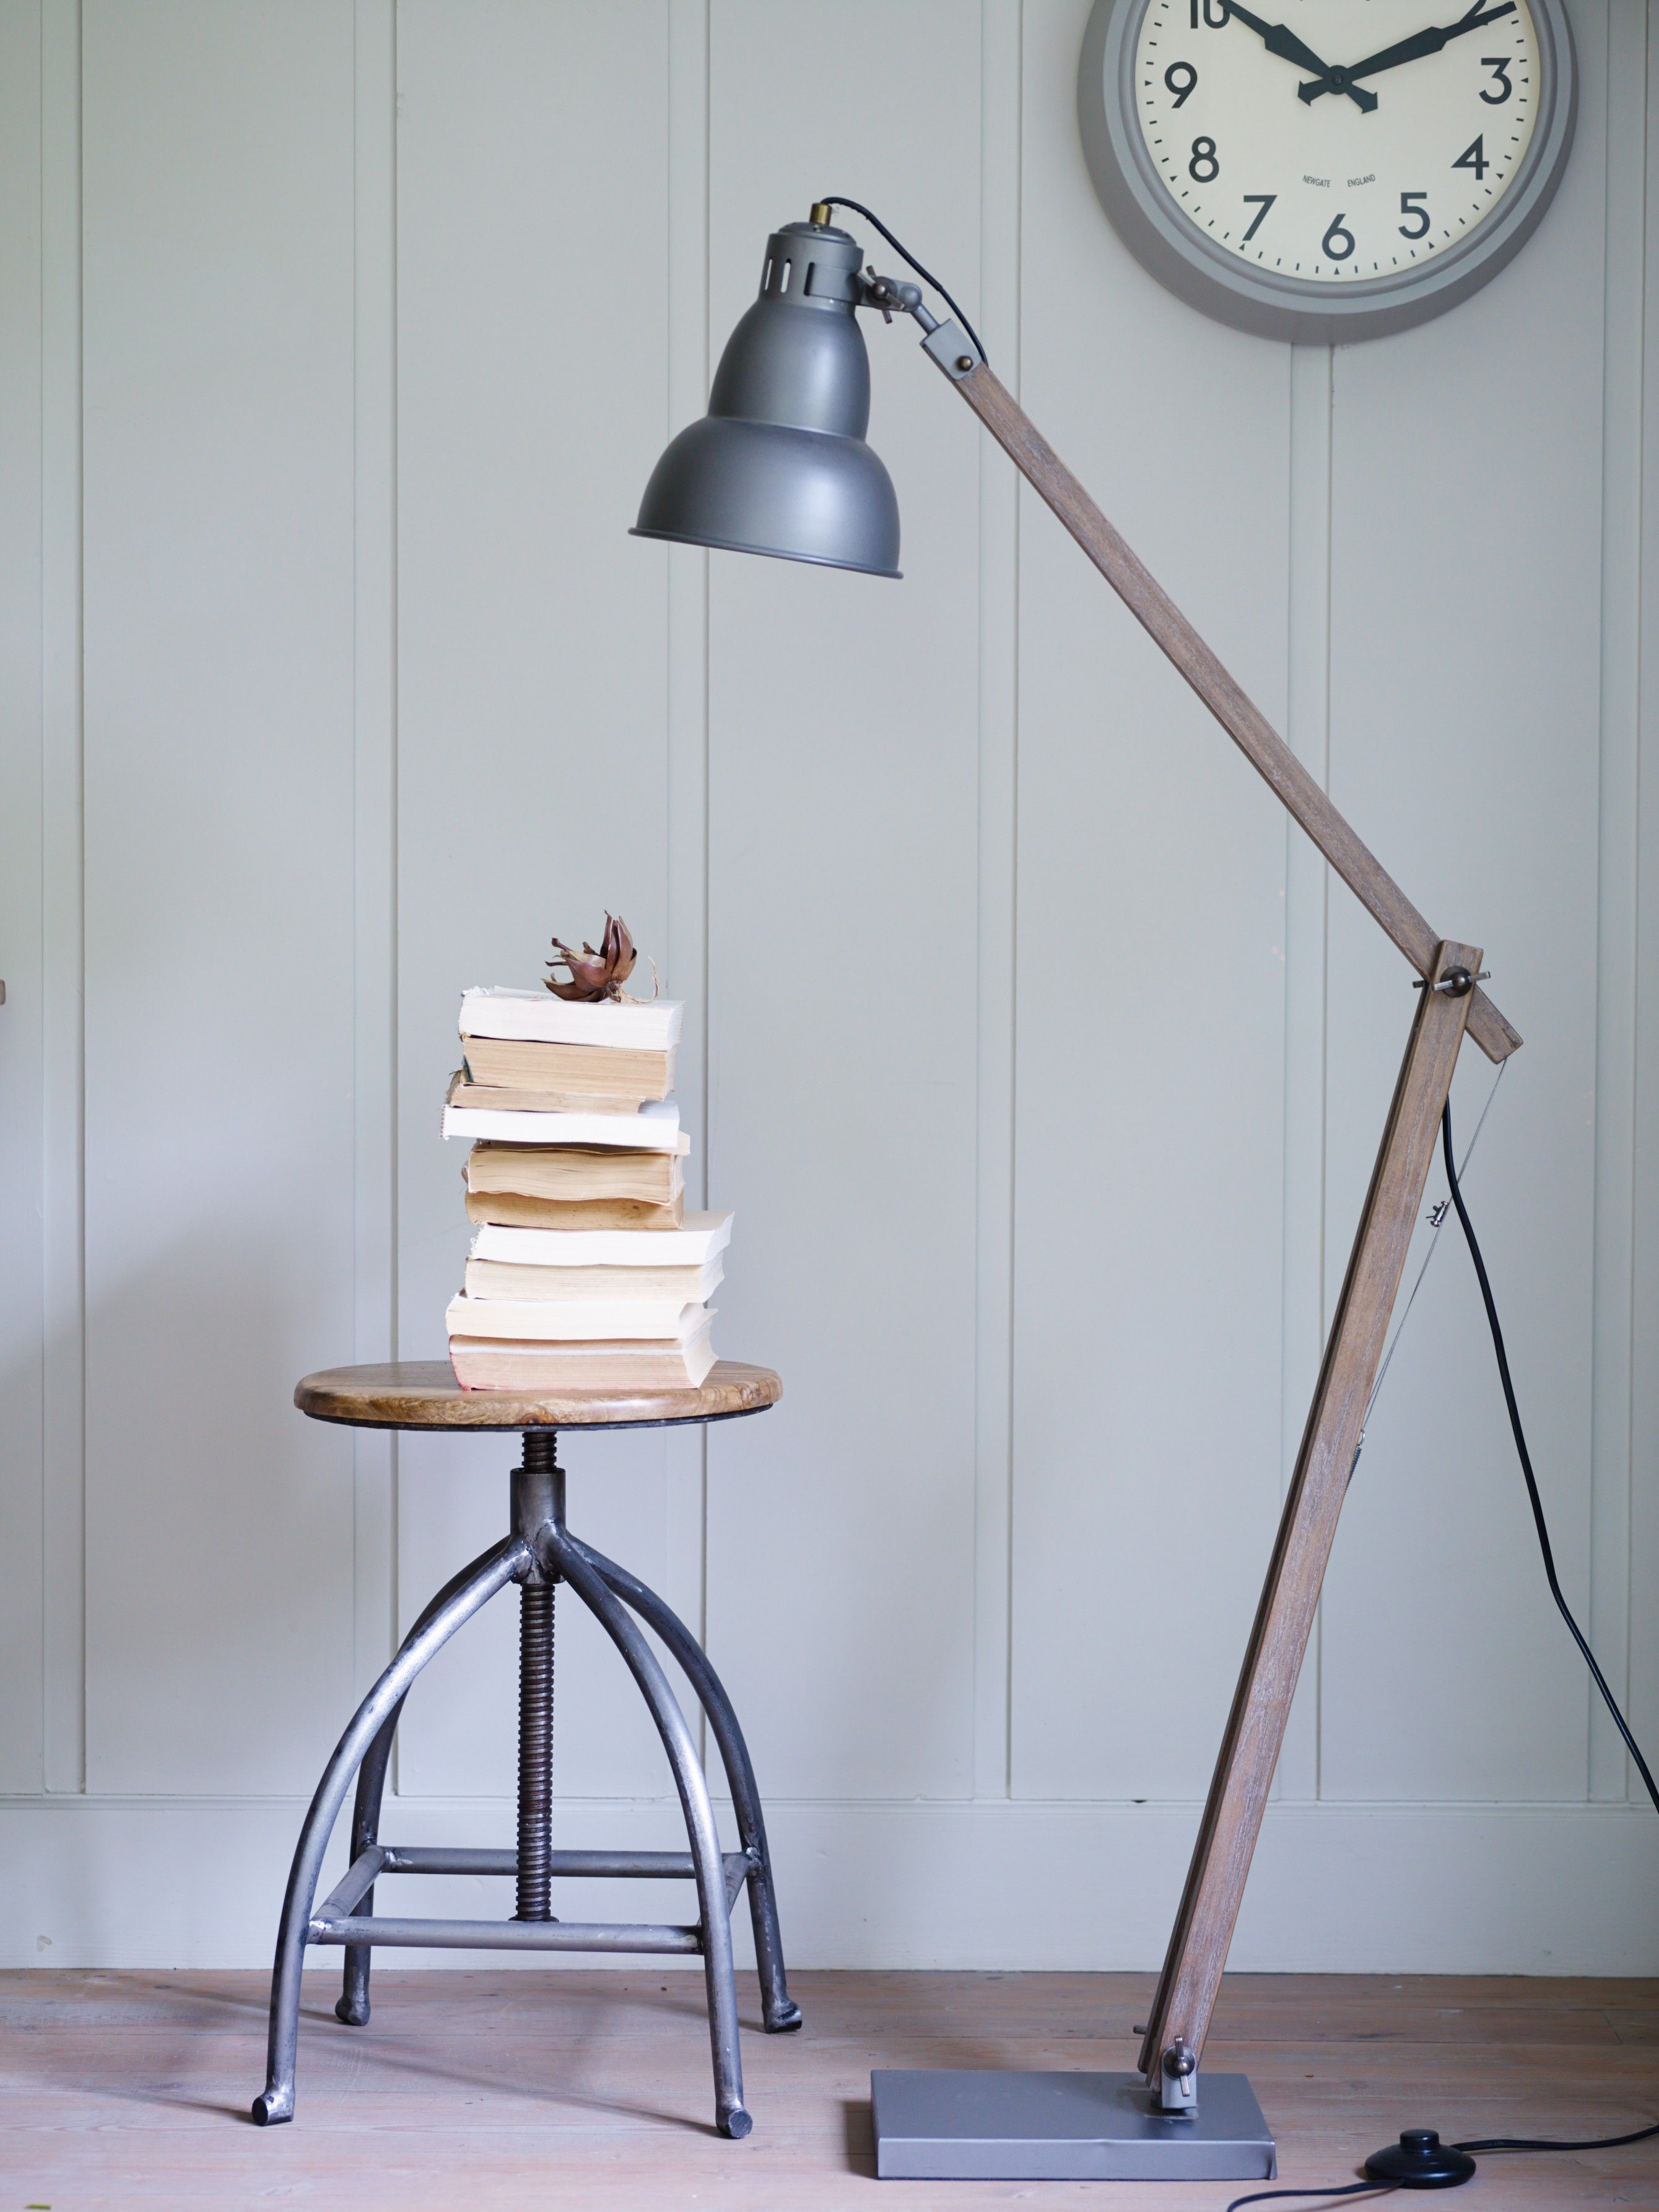 Vintage Style Floor Lamp New Lighting Decorative Home Home